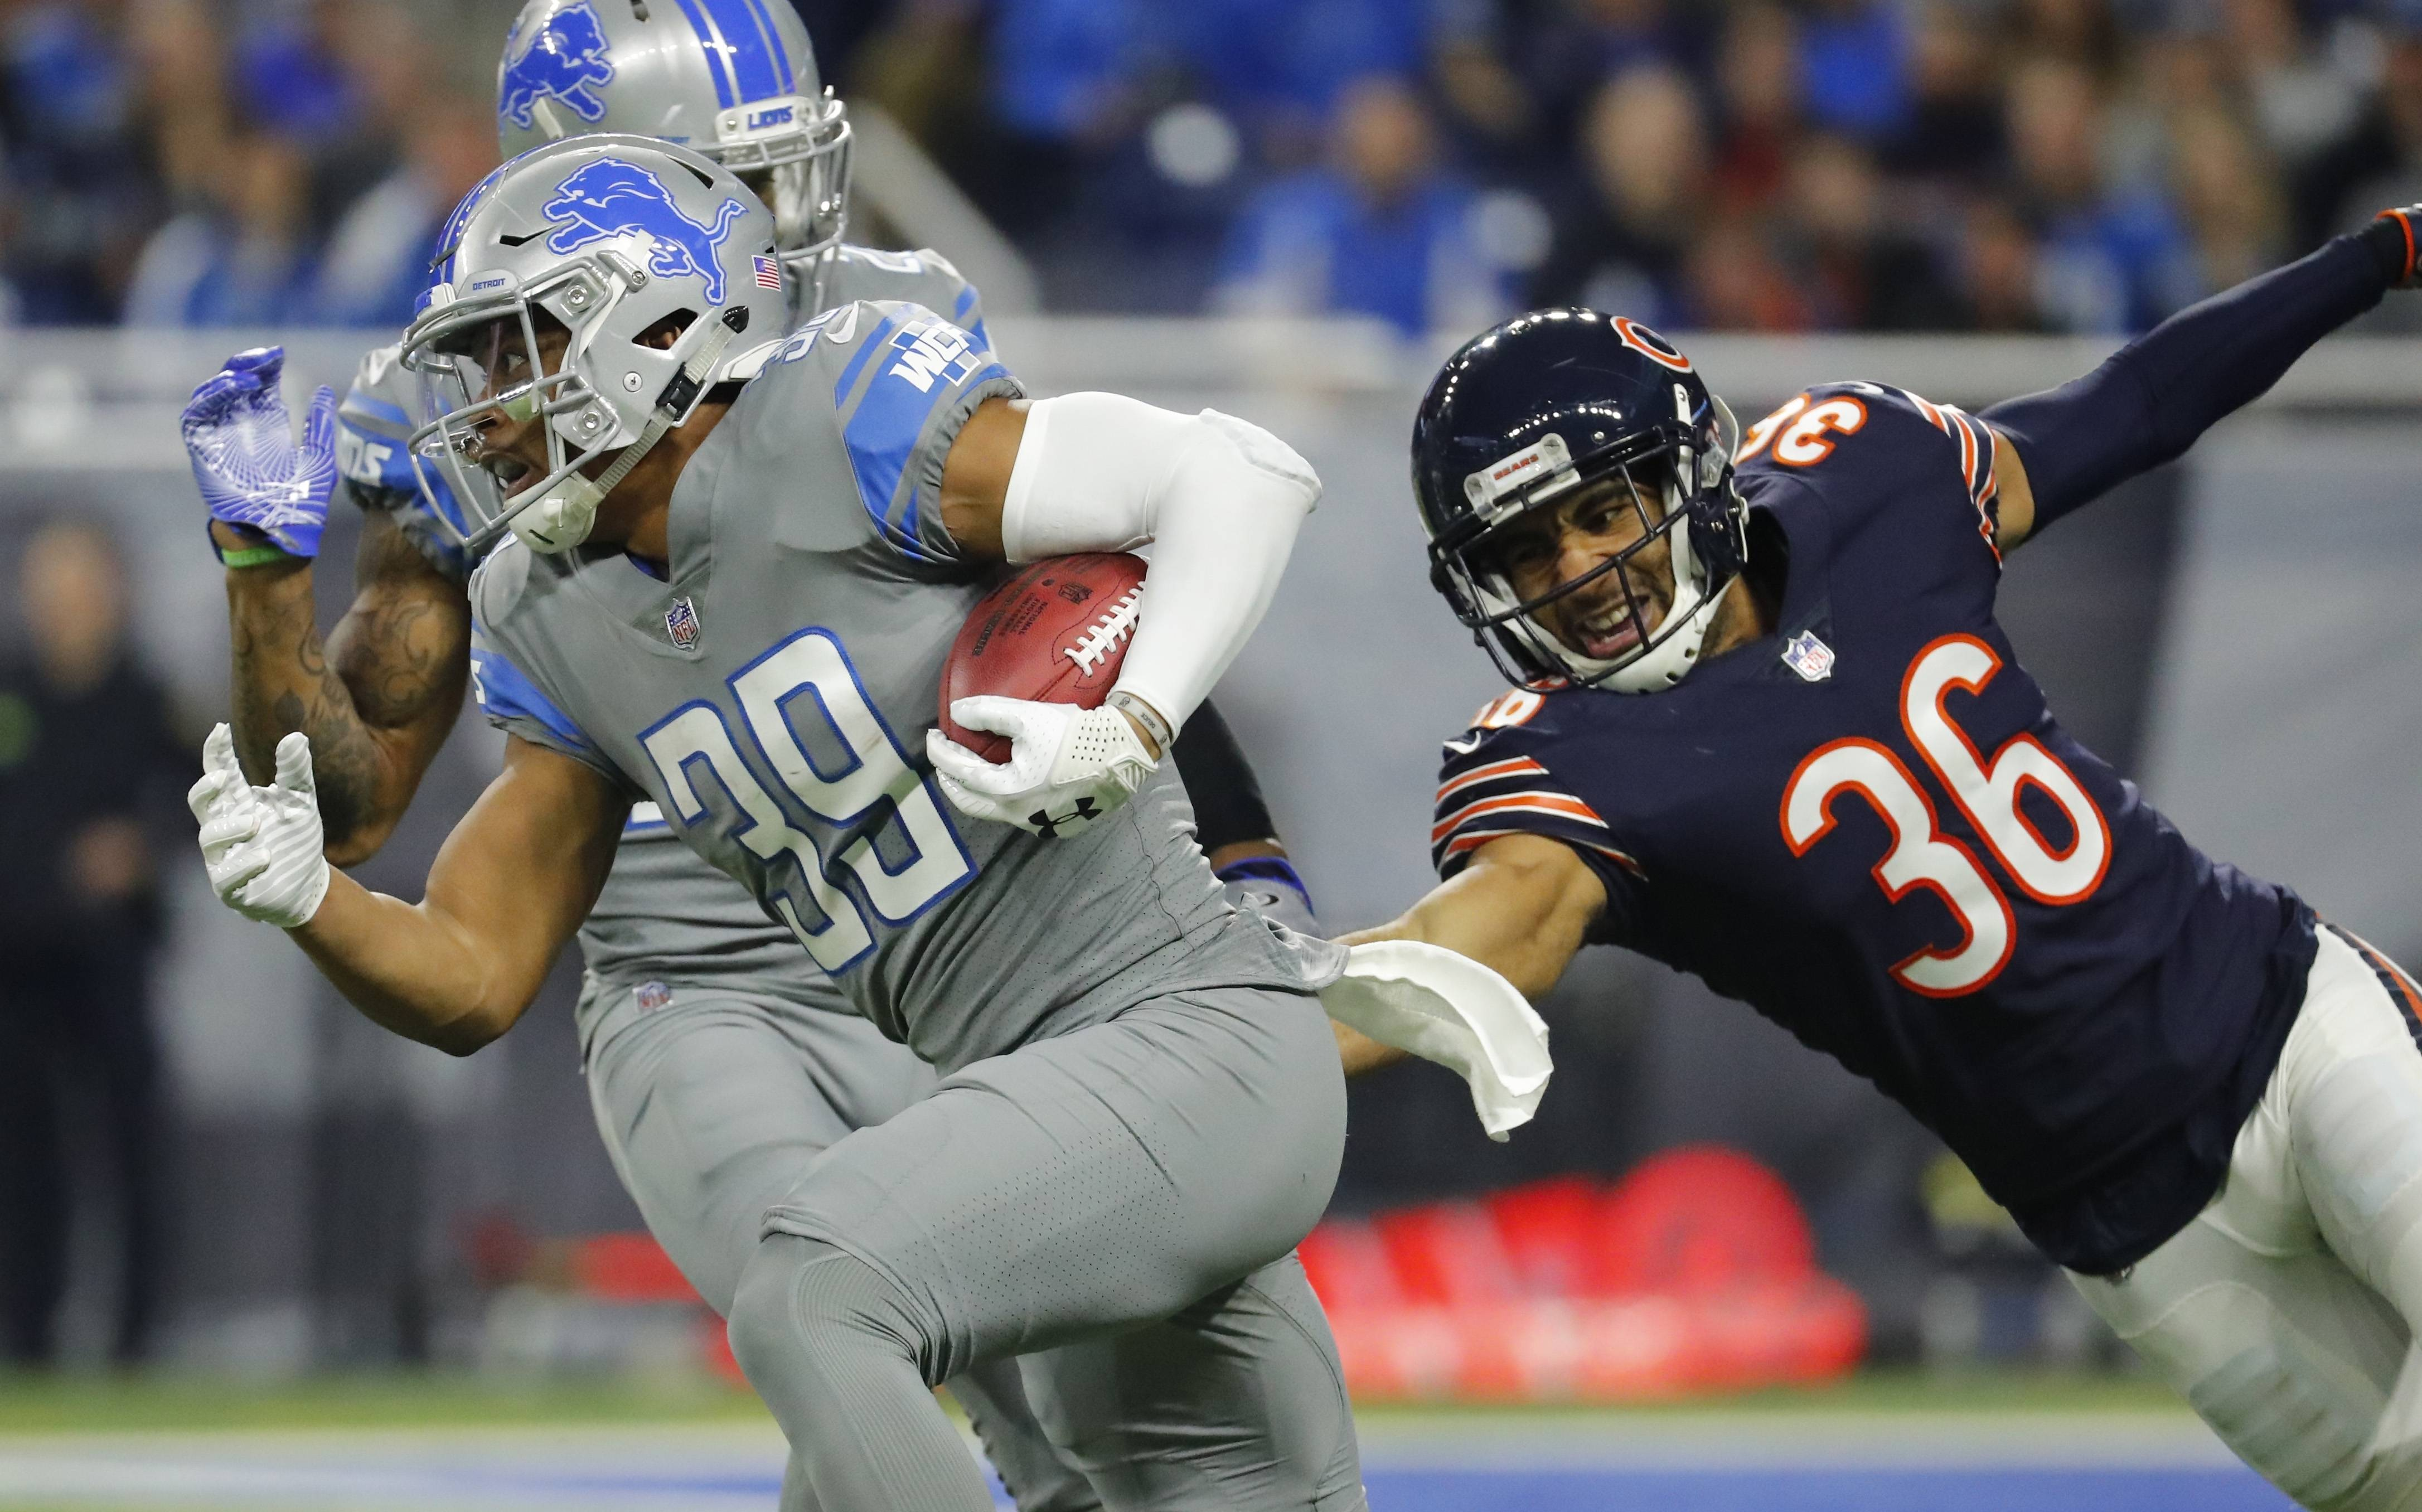 Chicago Bears free safety DeAndre Houston-Carson (36) attempts to reach Detroit Lions cornerback Jamal Agnew (39) during the first half of an NFL football game, Saturday, Dec. 16, 2017, in Detroit. (AP Photo/Rick Osentoski)